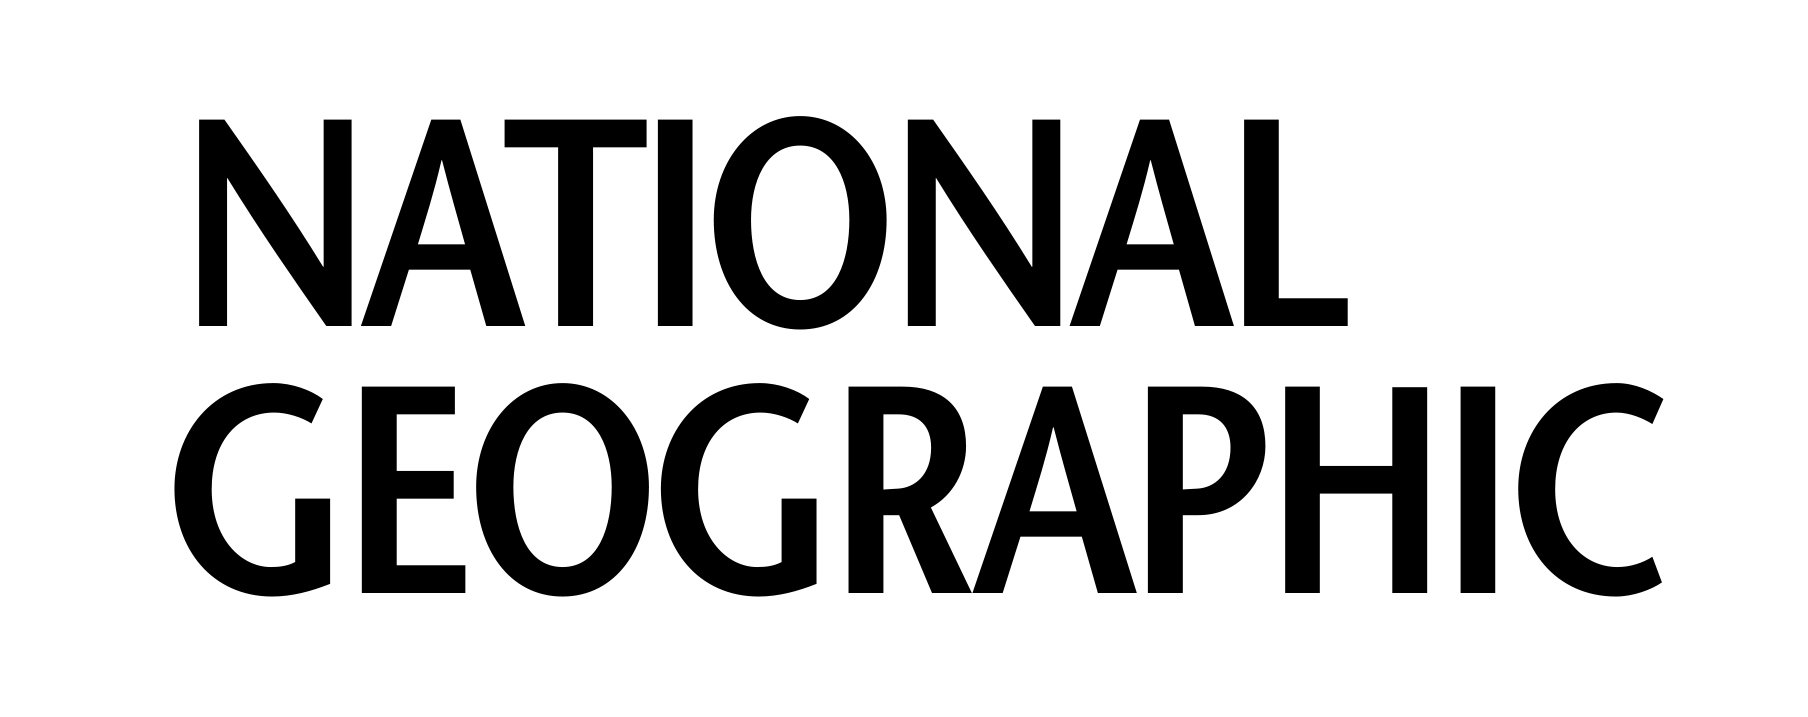 National Geographic Logo National Geographic Symbol Meaning